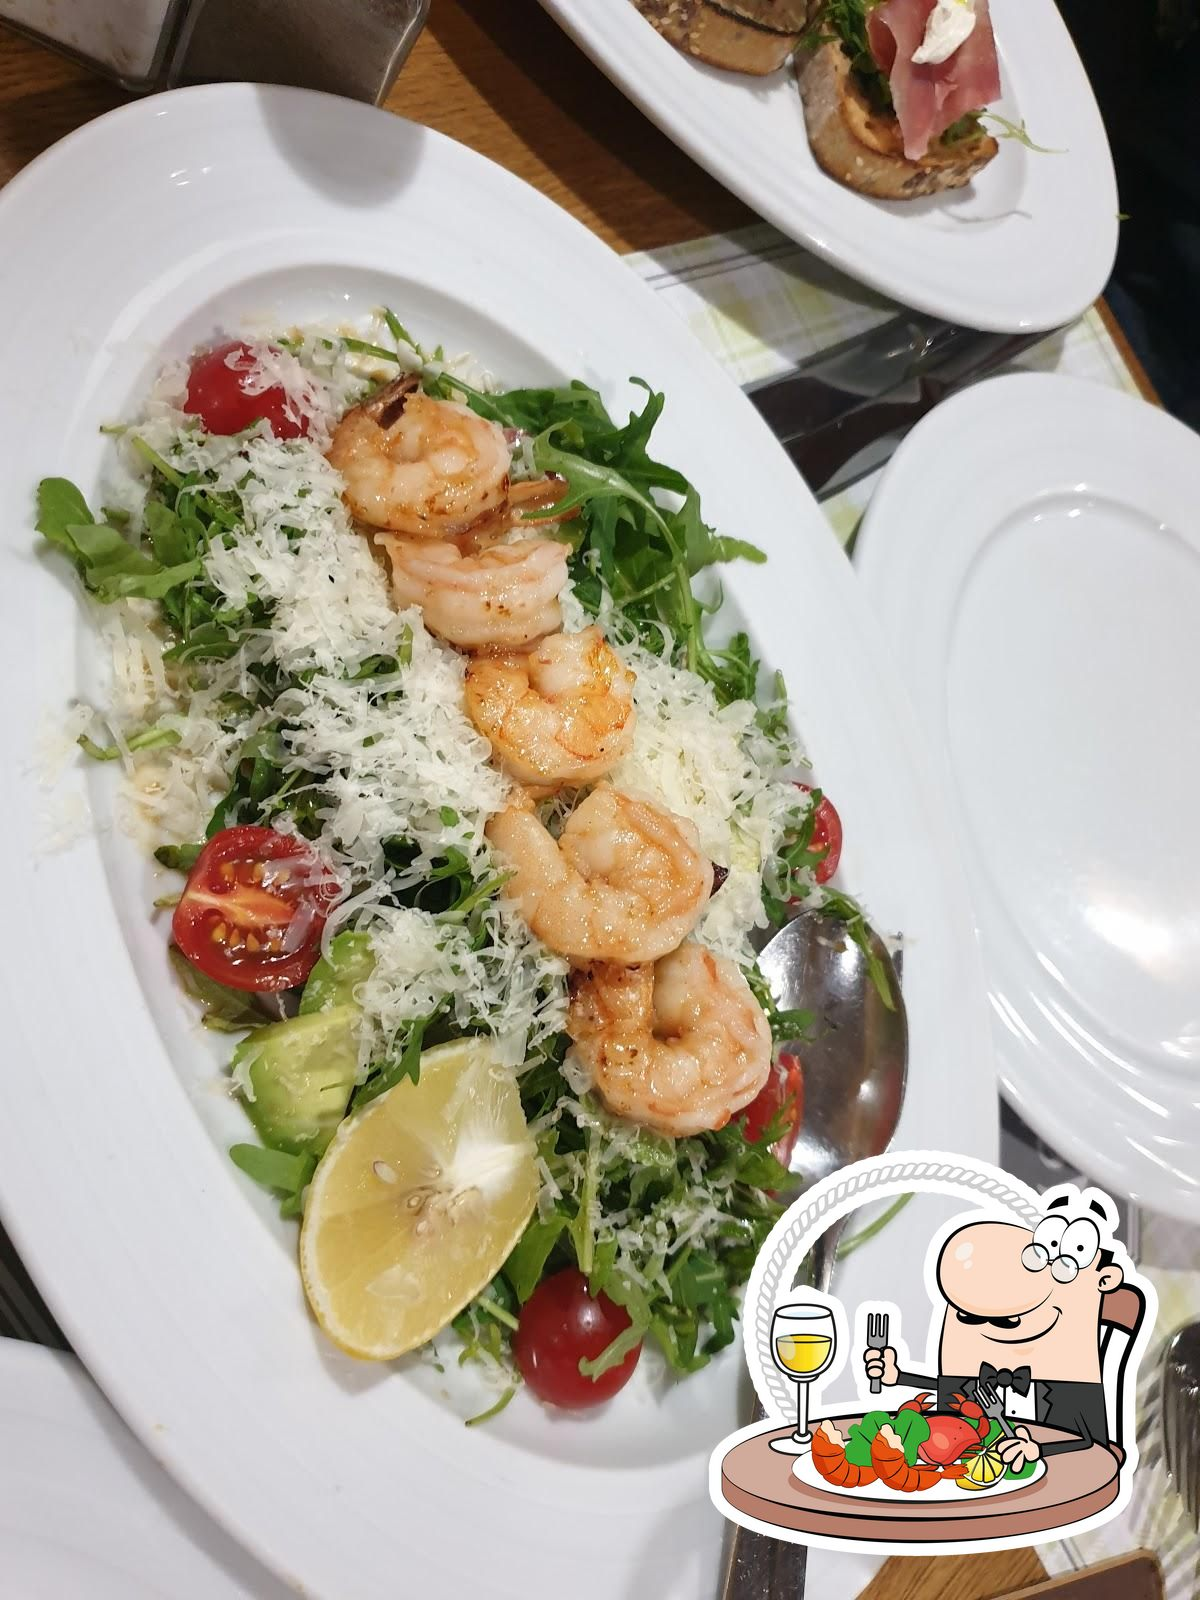 The guests of Very Well Cafe can try different seafood meals